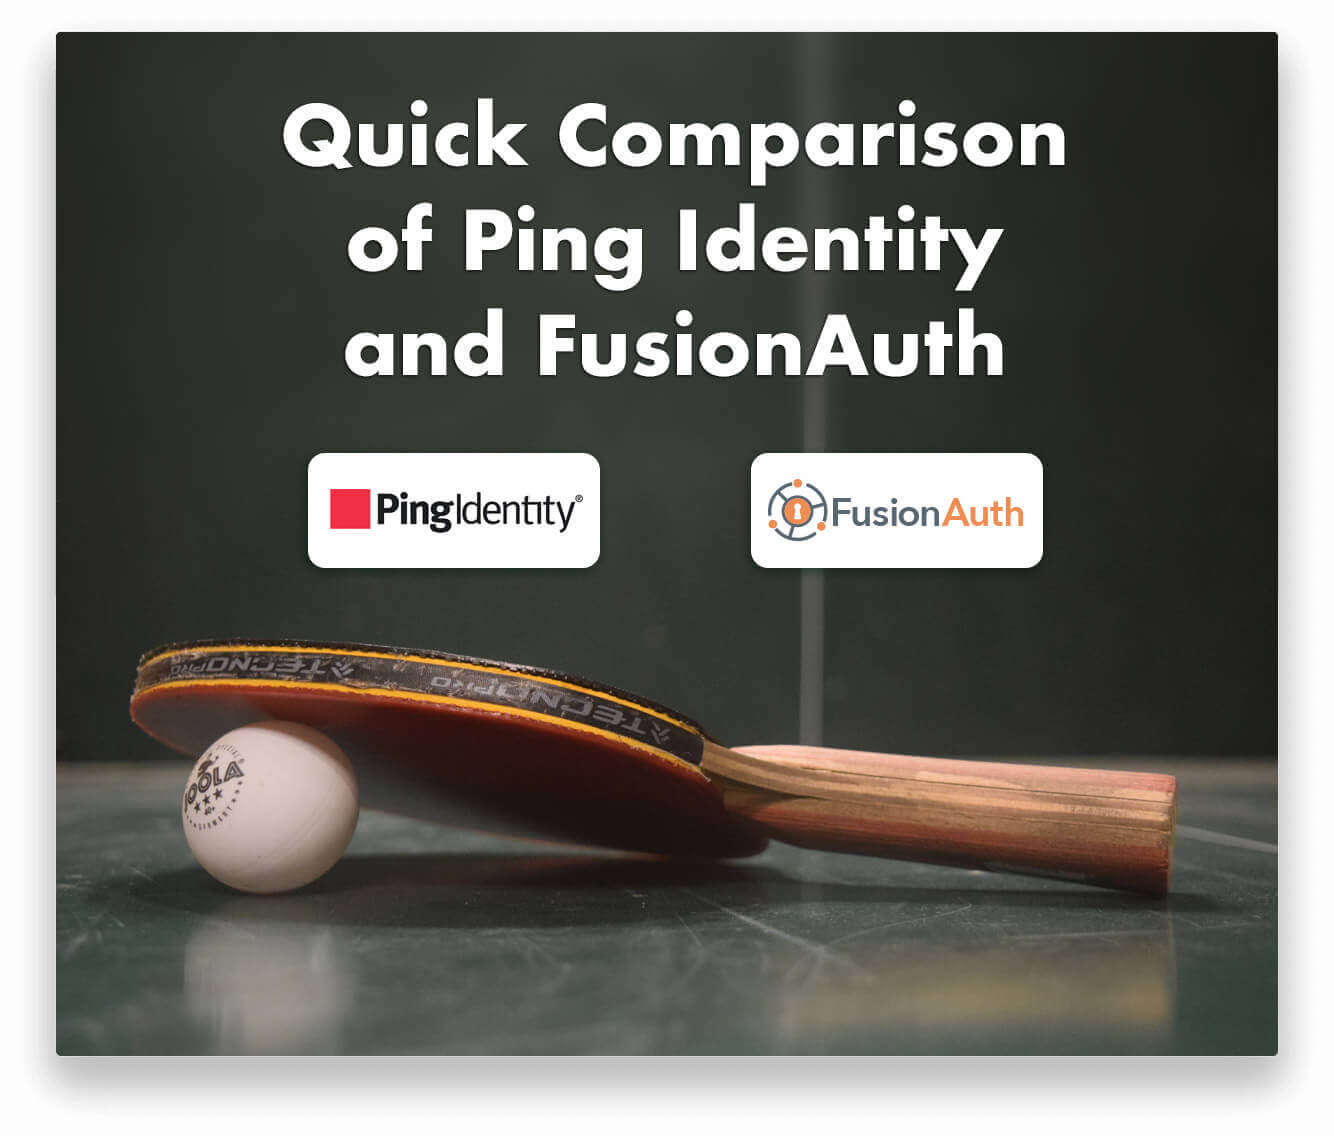 A Quick Comparison Of Ping Identity And FusionAuth